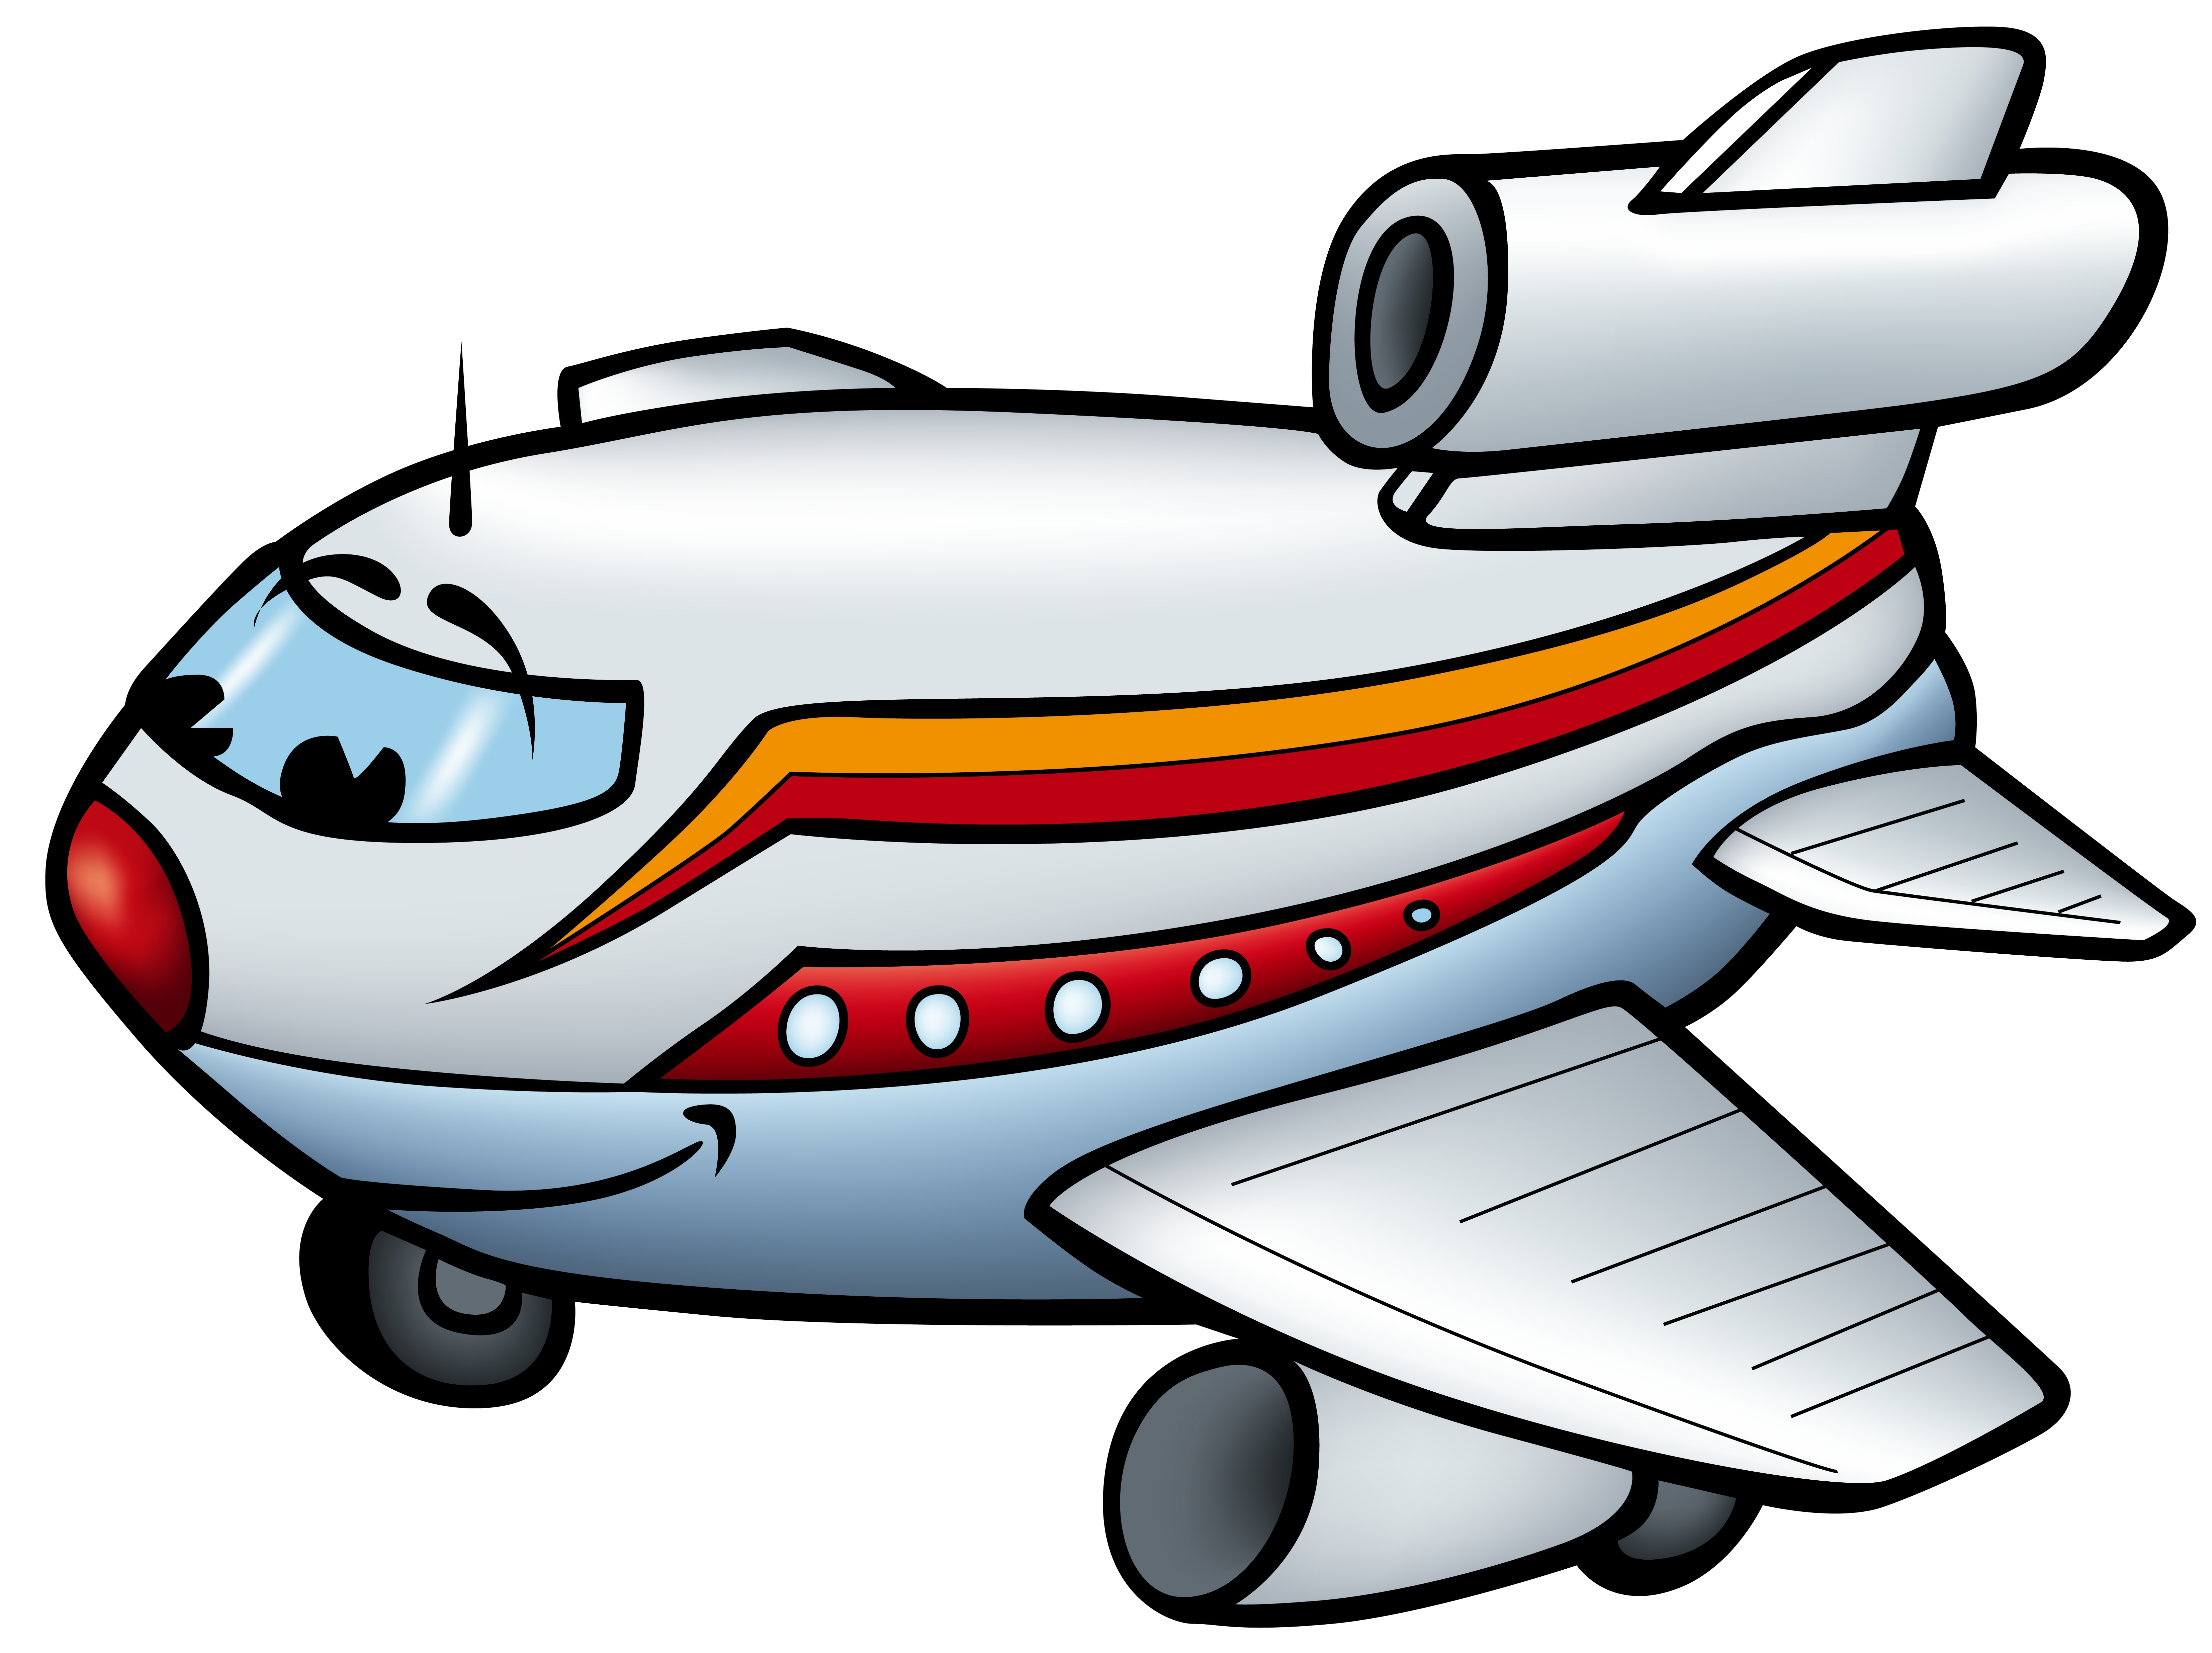 cartoon airplane clipart - photo #16